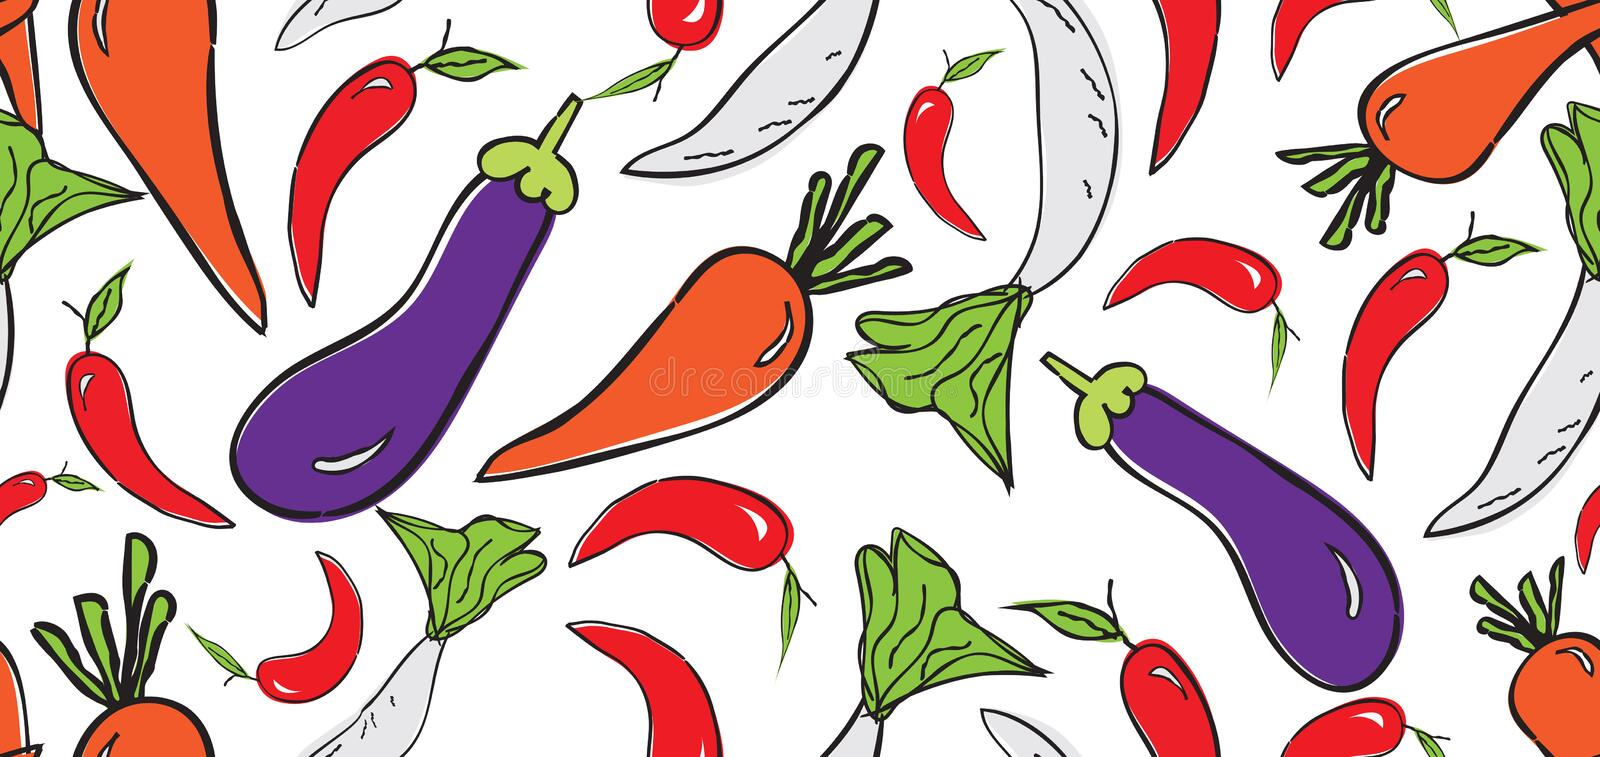 Vegetables seamless pattern, Vegetables banner template vector, web banner, web page, Eggplant, chili pepper, radish, eggplant. Carrots, cover, Healthy food stock illustration